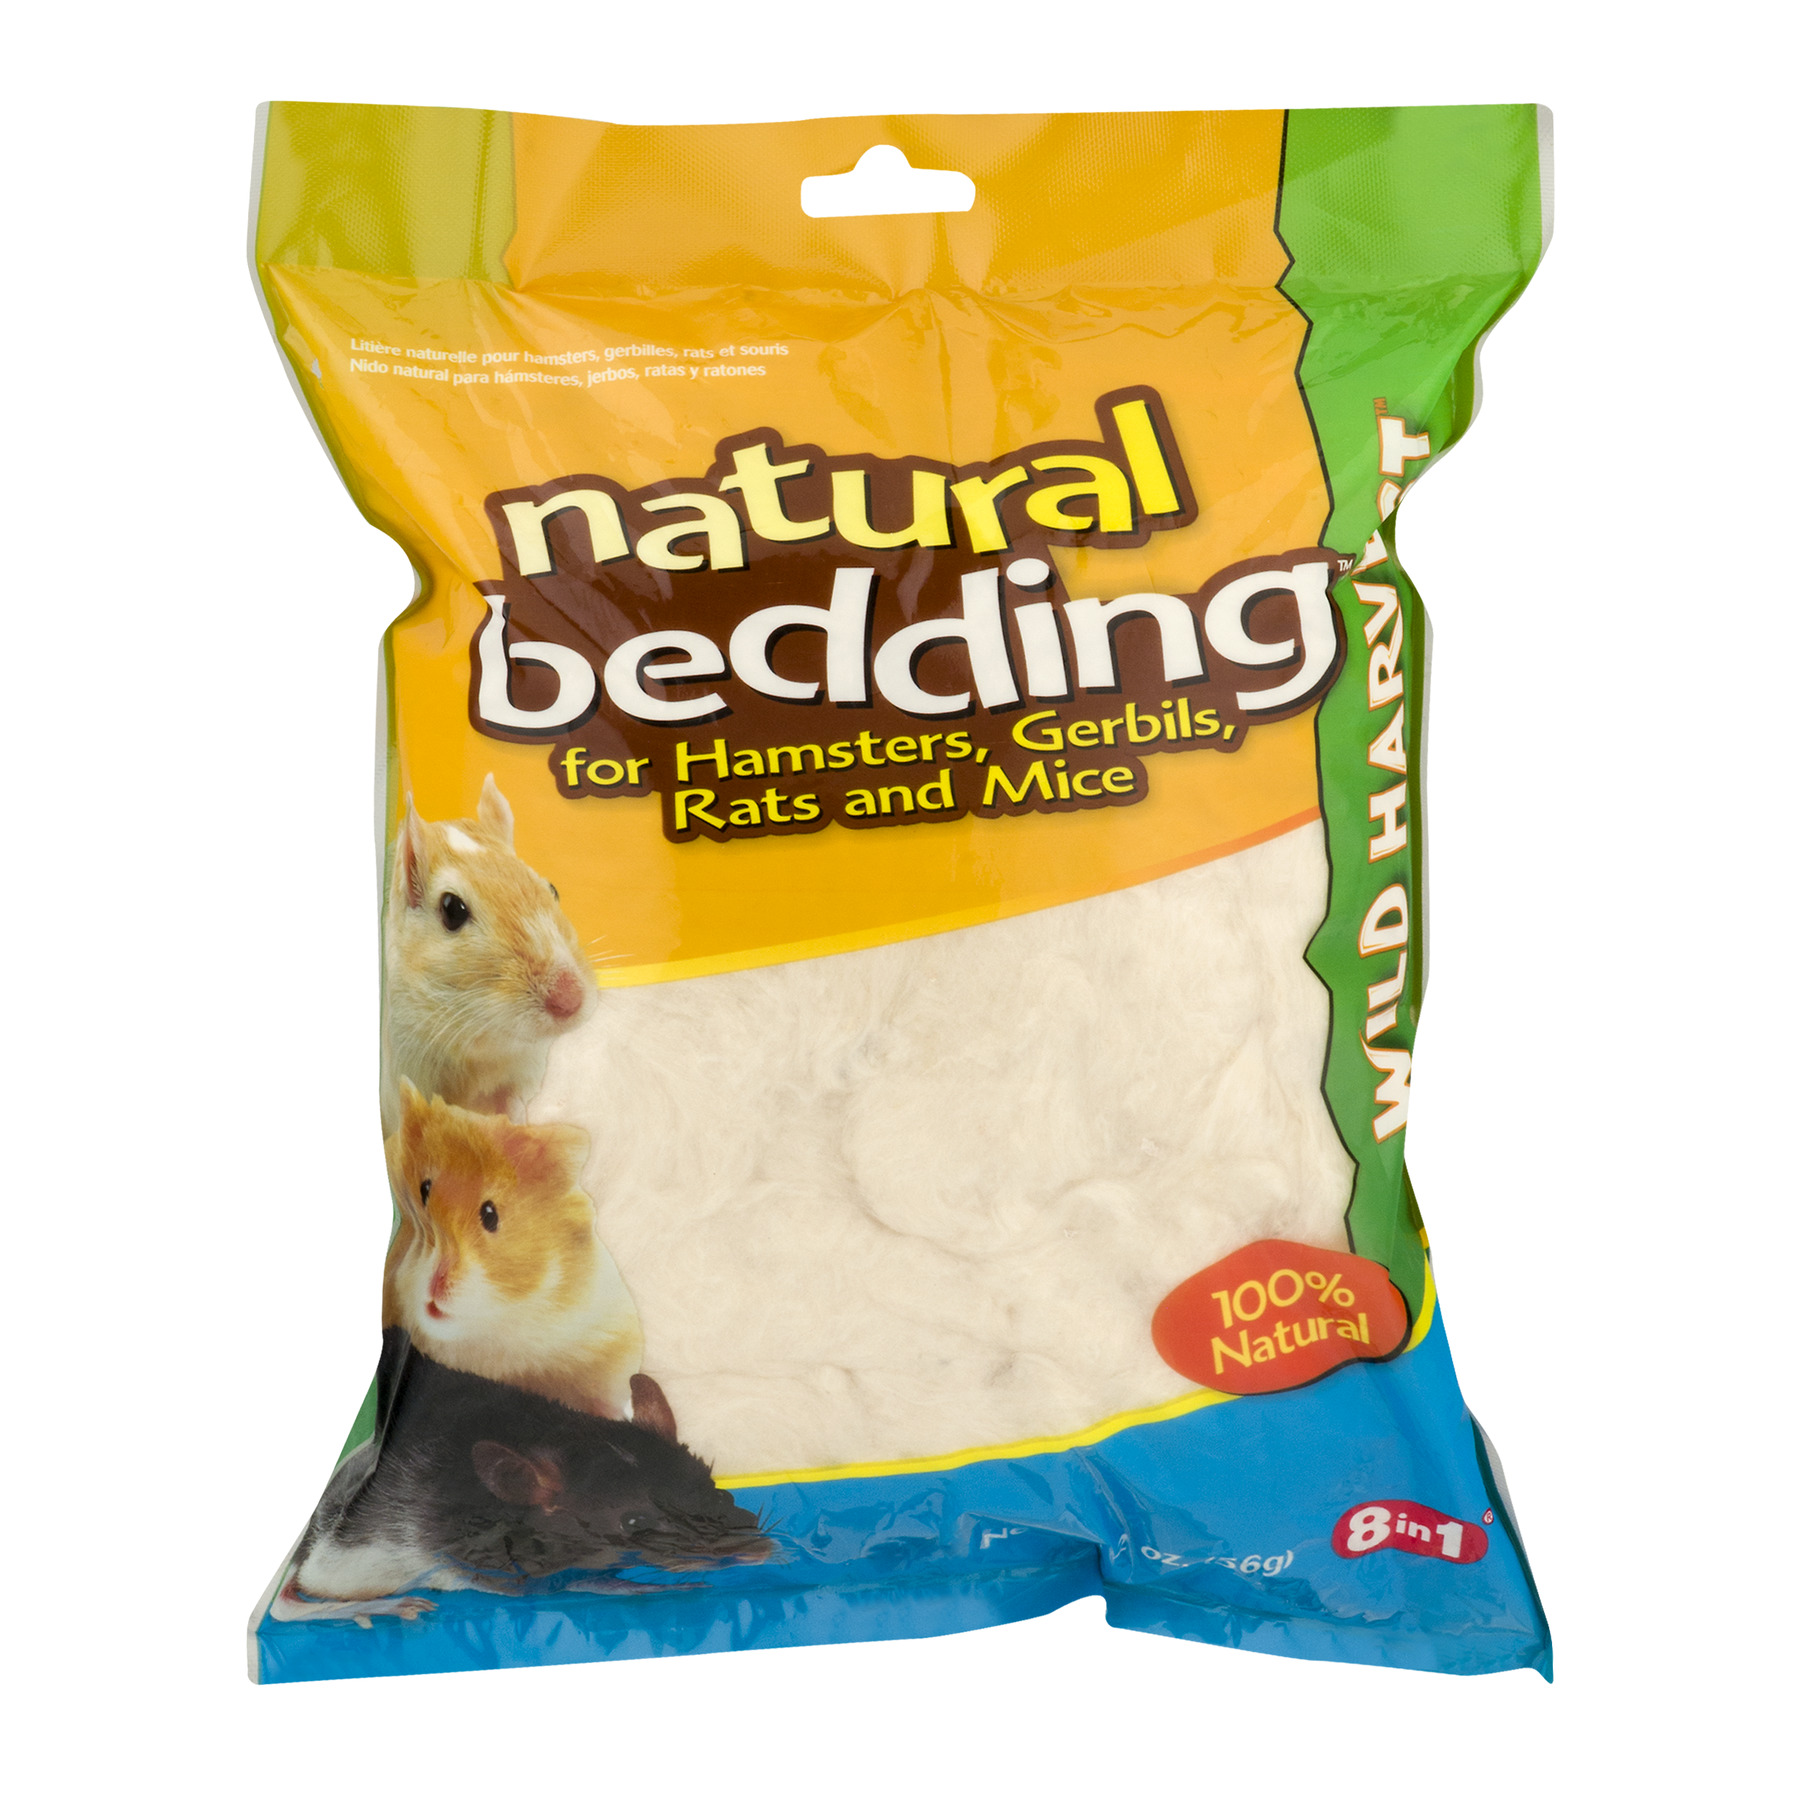 Wild Harvest Natural Bedding for Hamsters, Gerbils, Rats and Mice, 2.0 OZ - Walmart.com